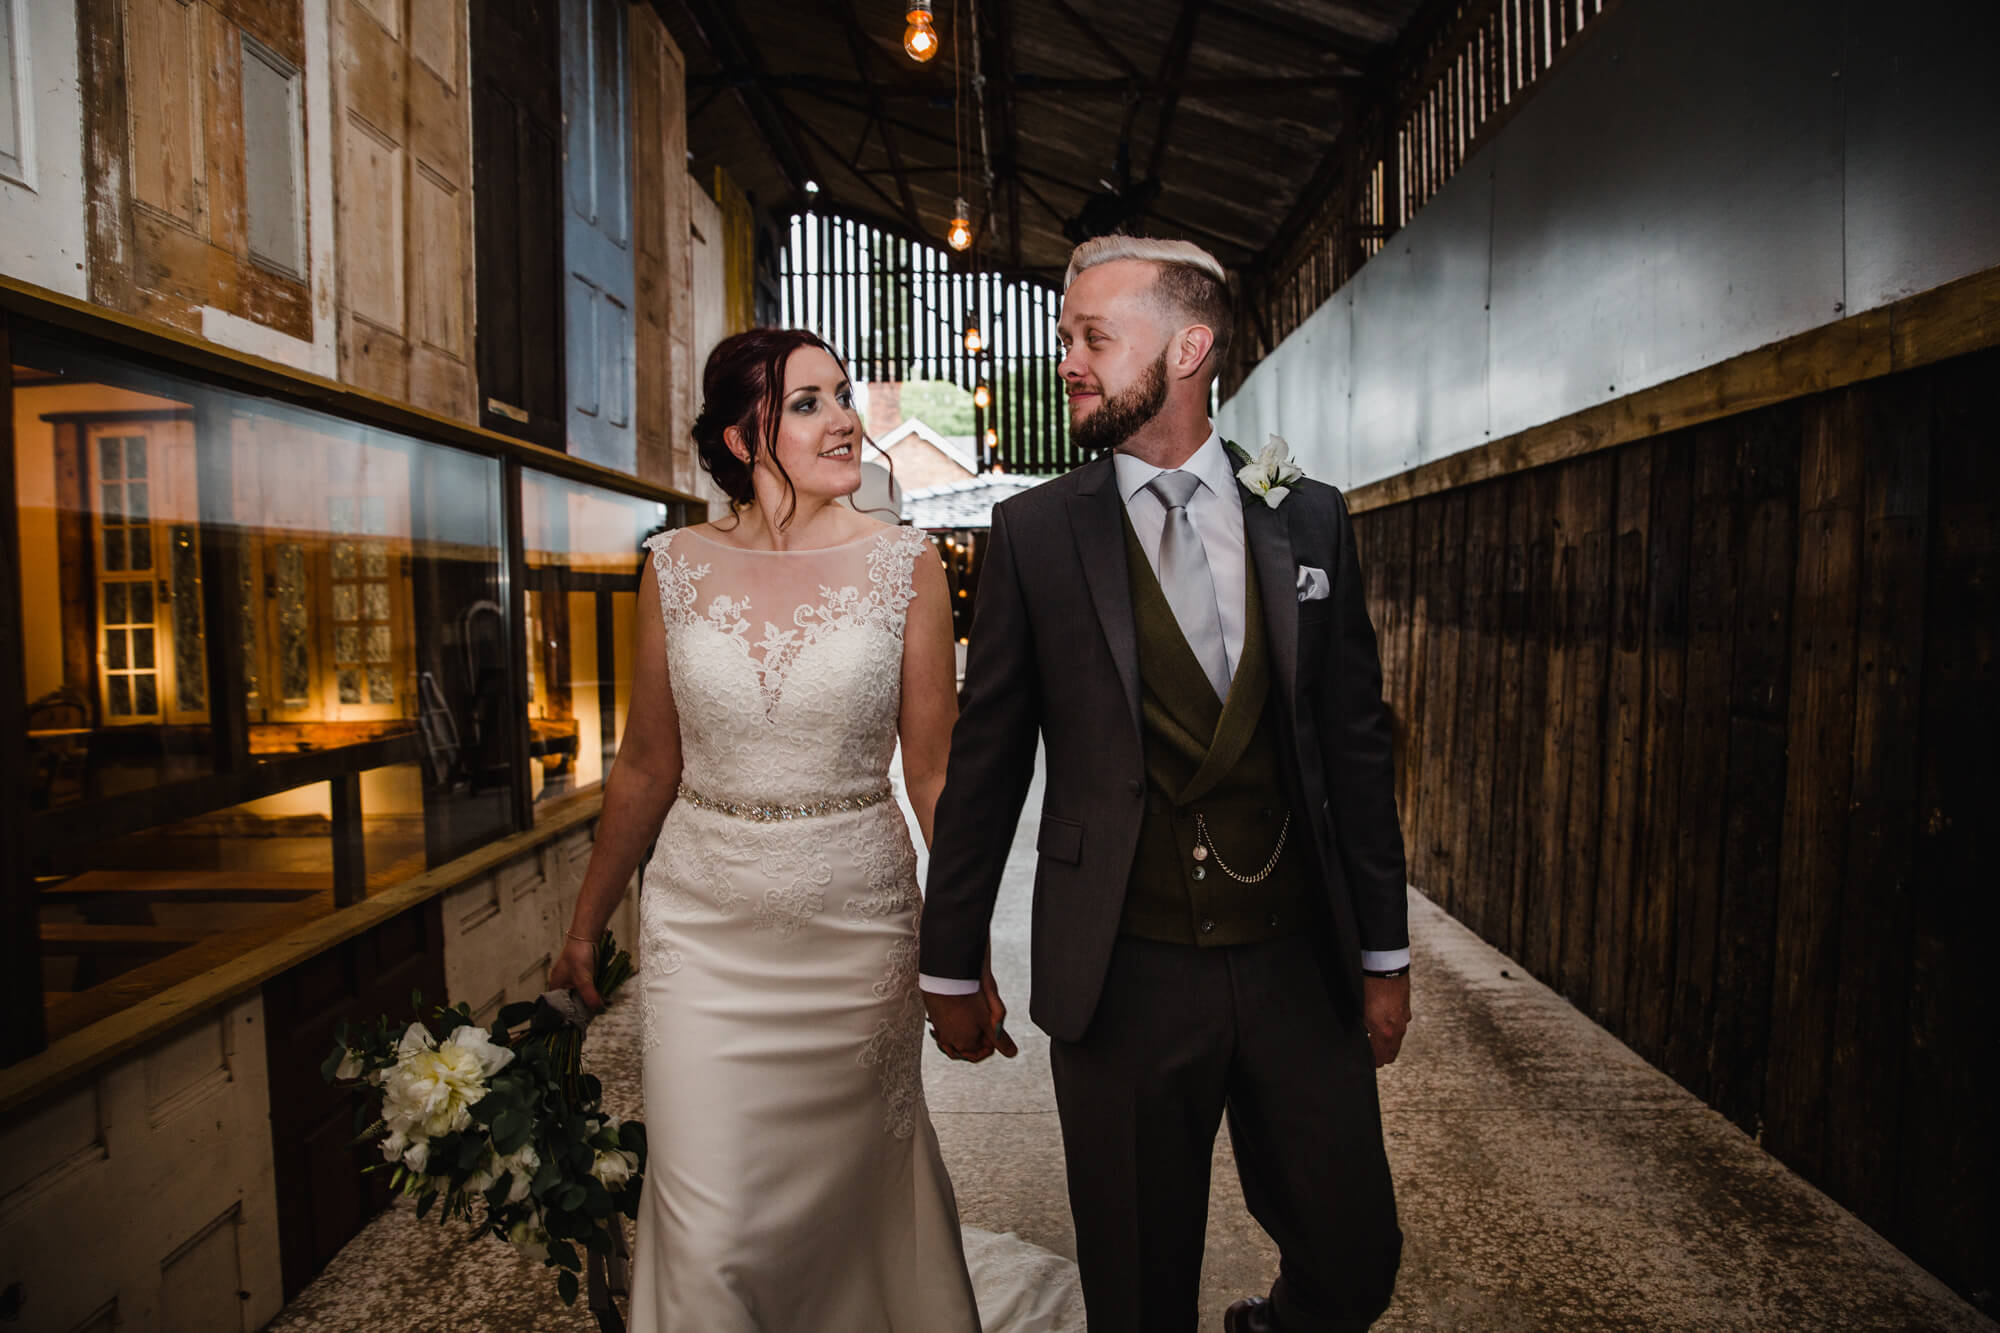 newly wedded couple walking toward camera for portrait flash photograph while holding bouquet against barn door